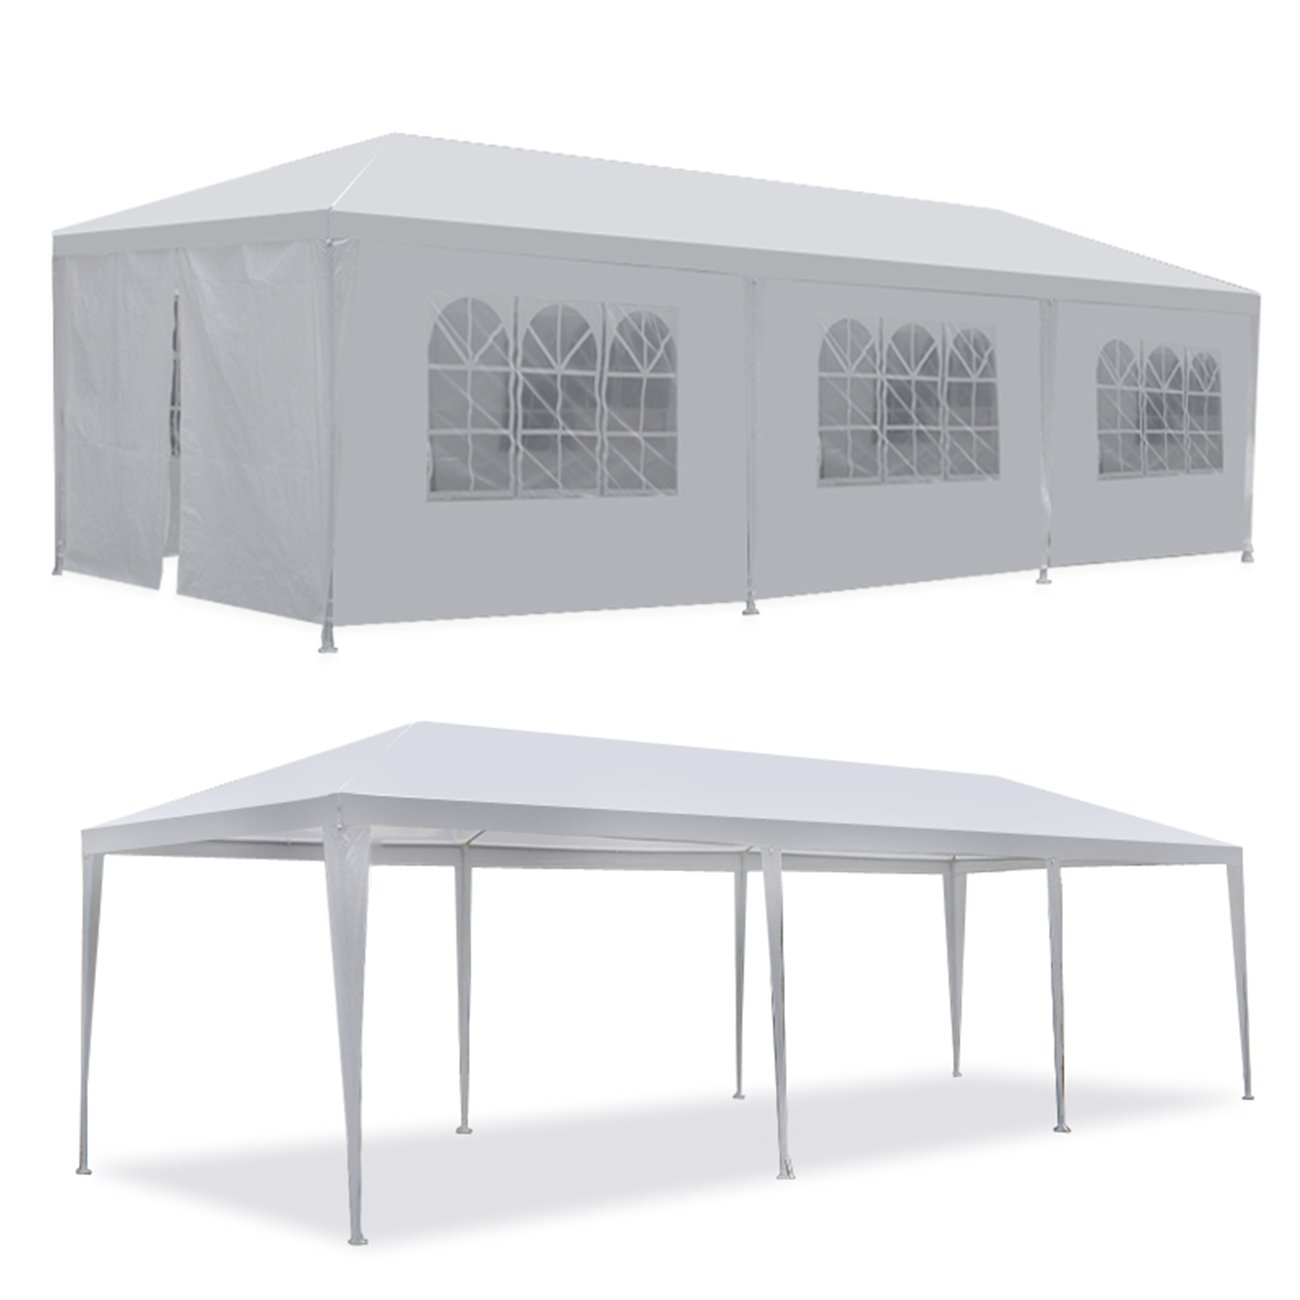 F2C 10'x30' Outdoor Gazebo White Canopy with sidewalls Party Wedding Tent Cater Events Pavilion Beach BBQ(10'X30') by F2C